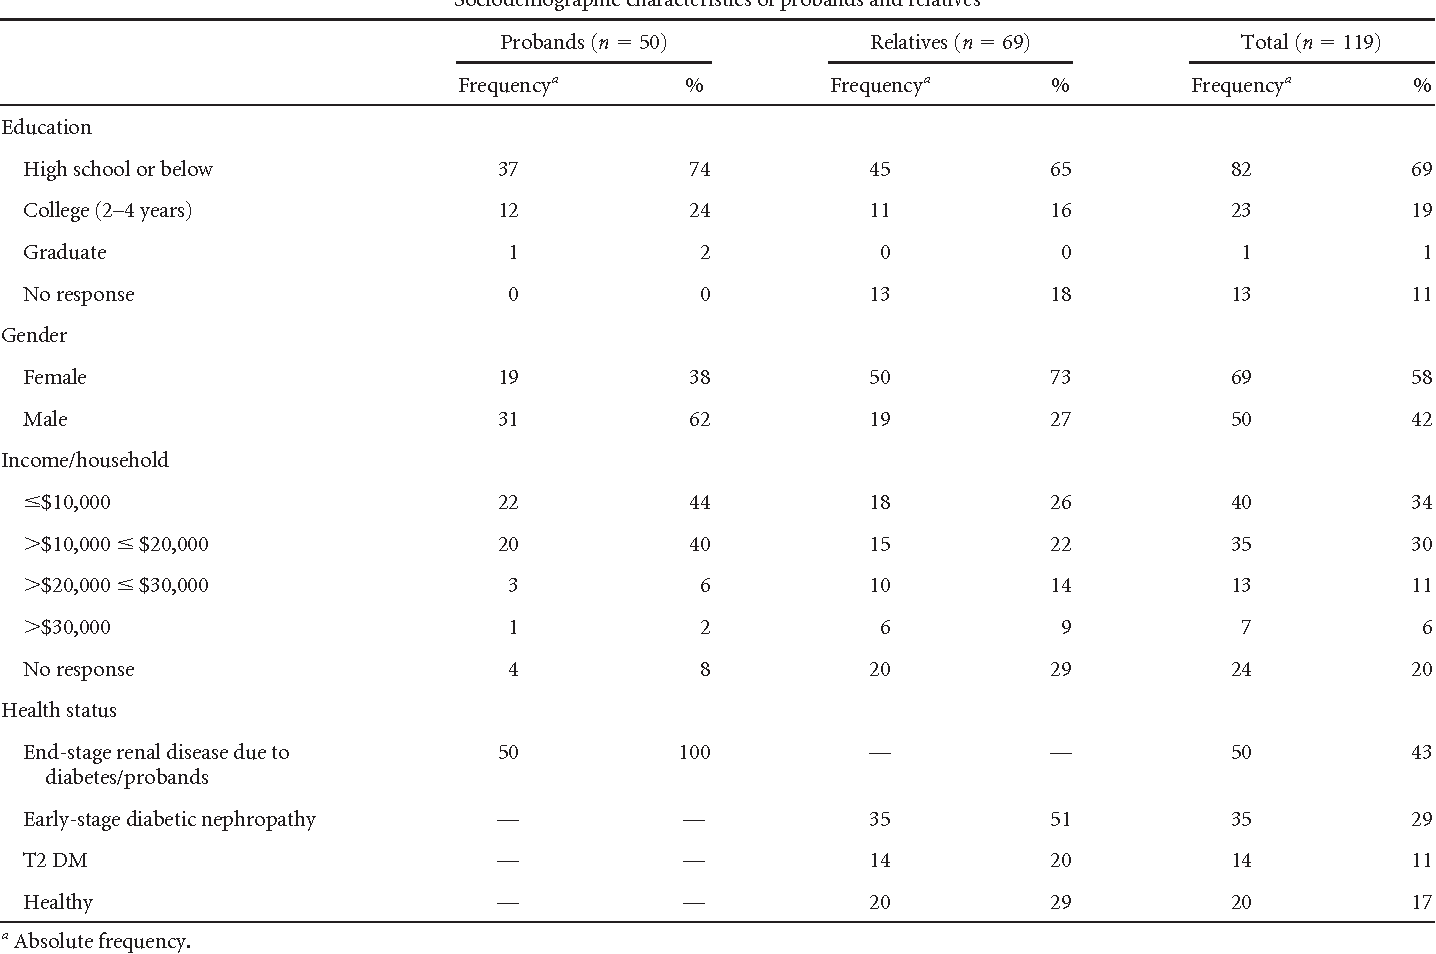 Table 3 Sociodemographic characteristics of probands and relatives